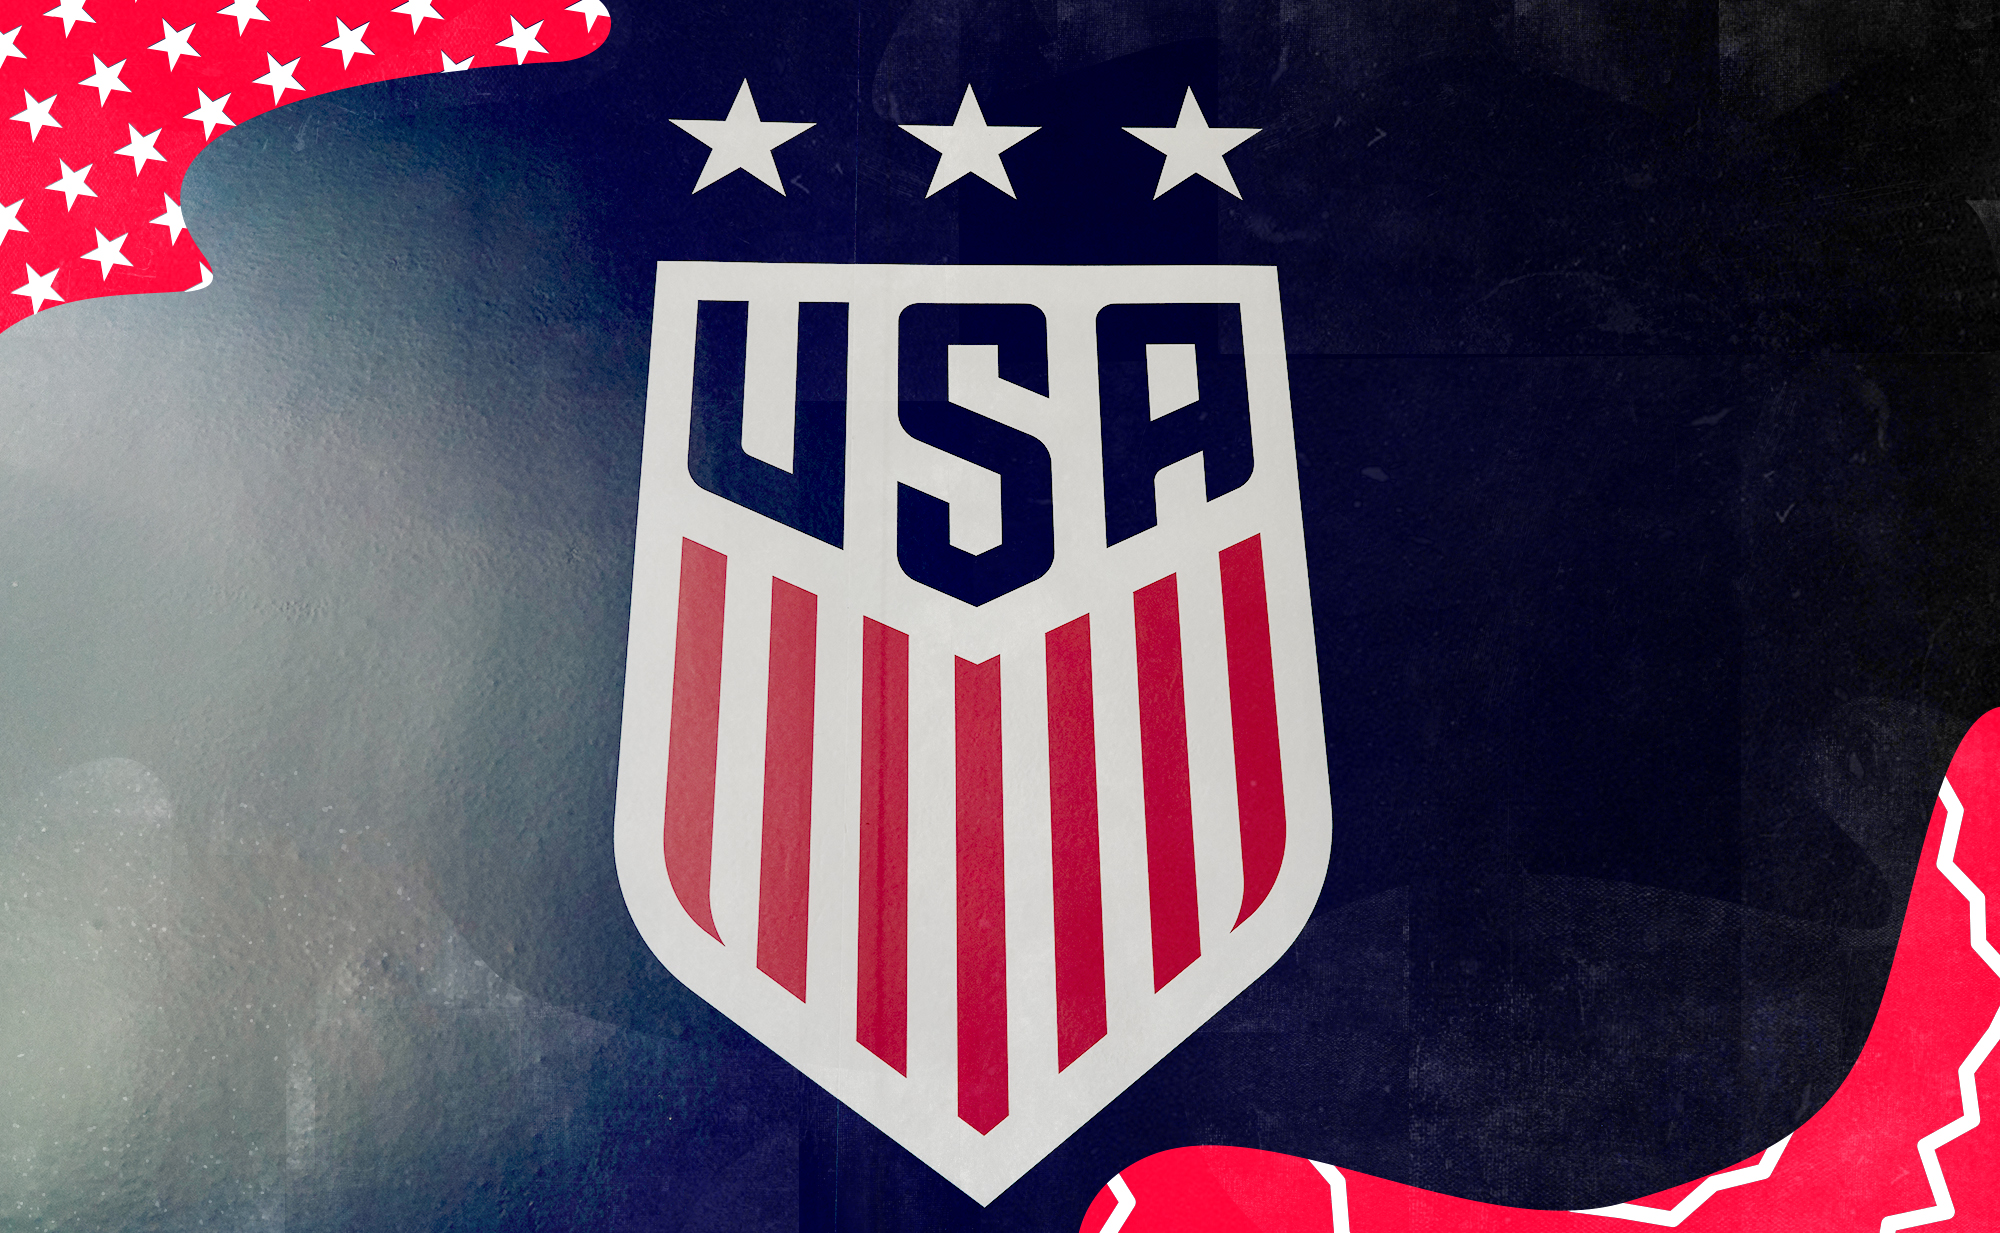 Photo of the U.S. Soccer's red and white crest, surrounded by red graphic trim.